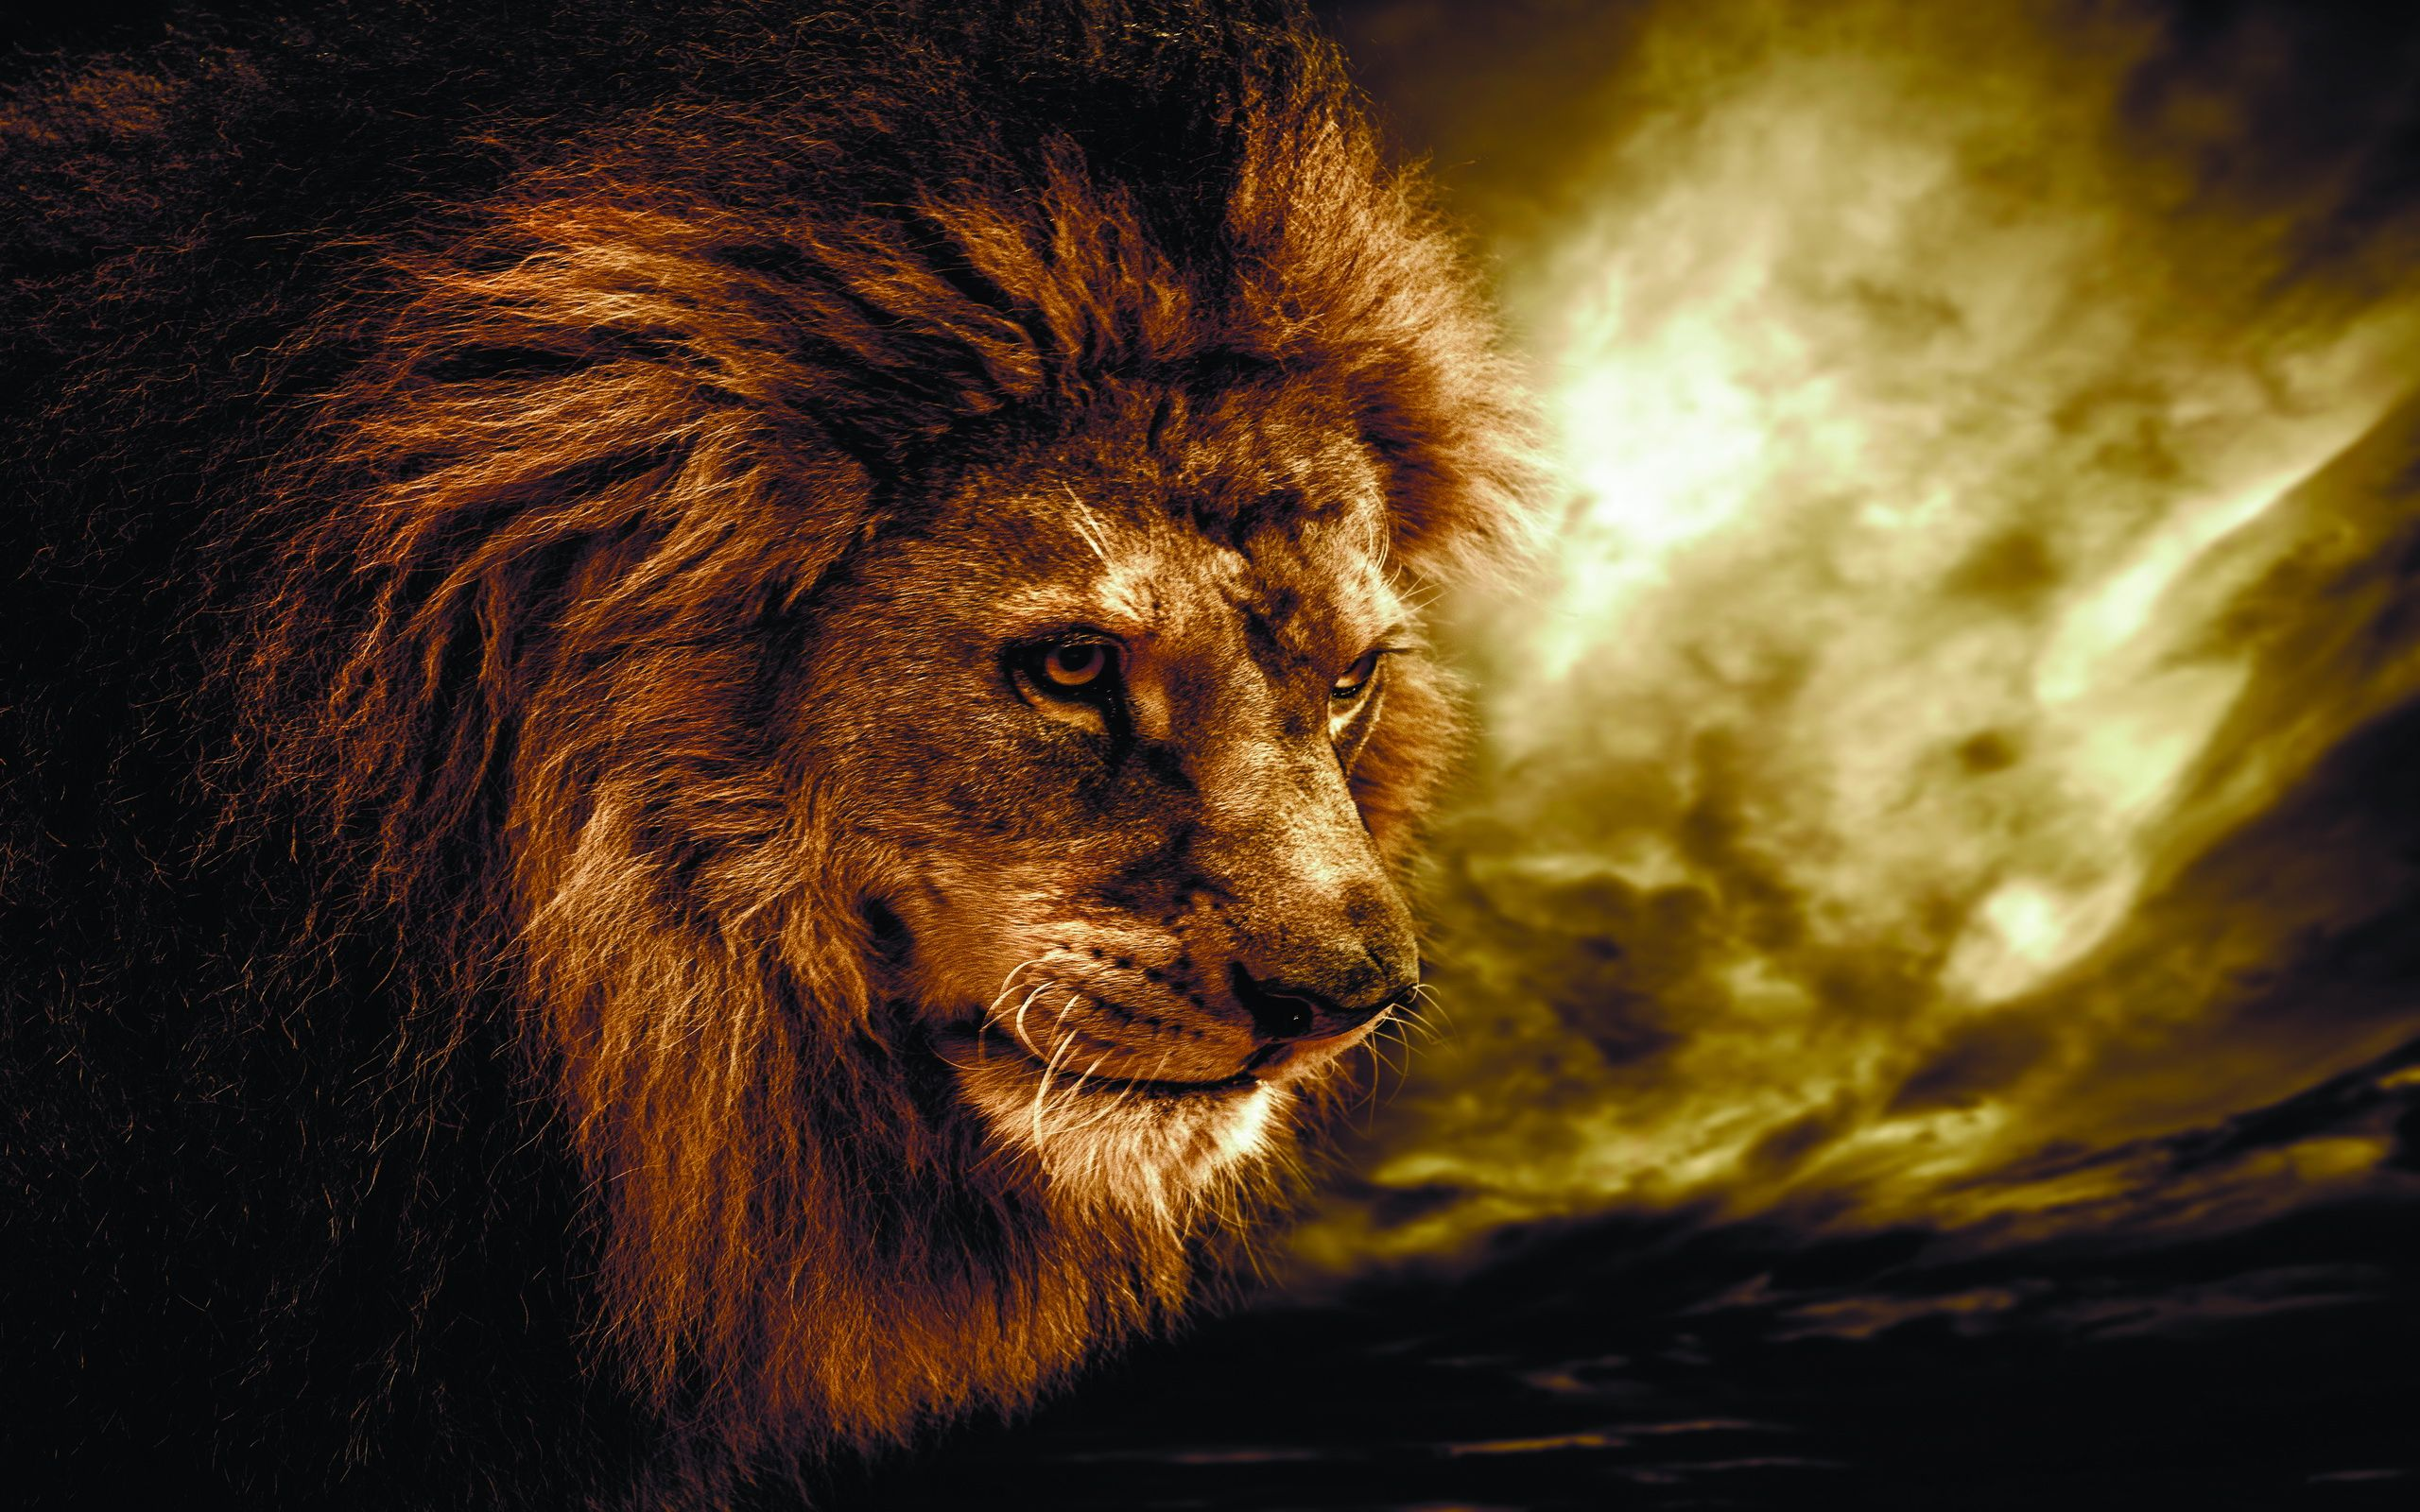 lion hd wallpapers download | hd wallpapers | pinterest | lion